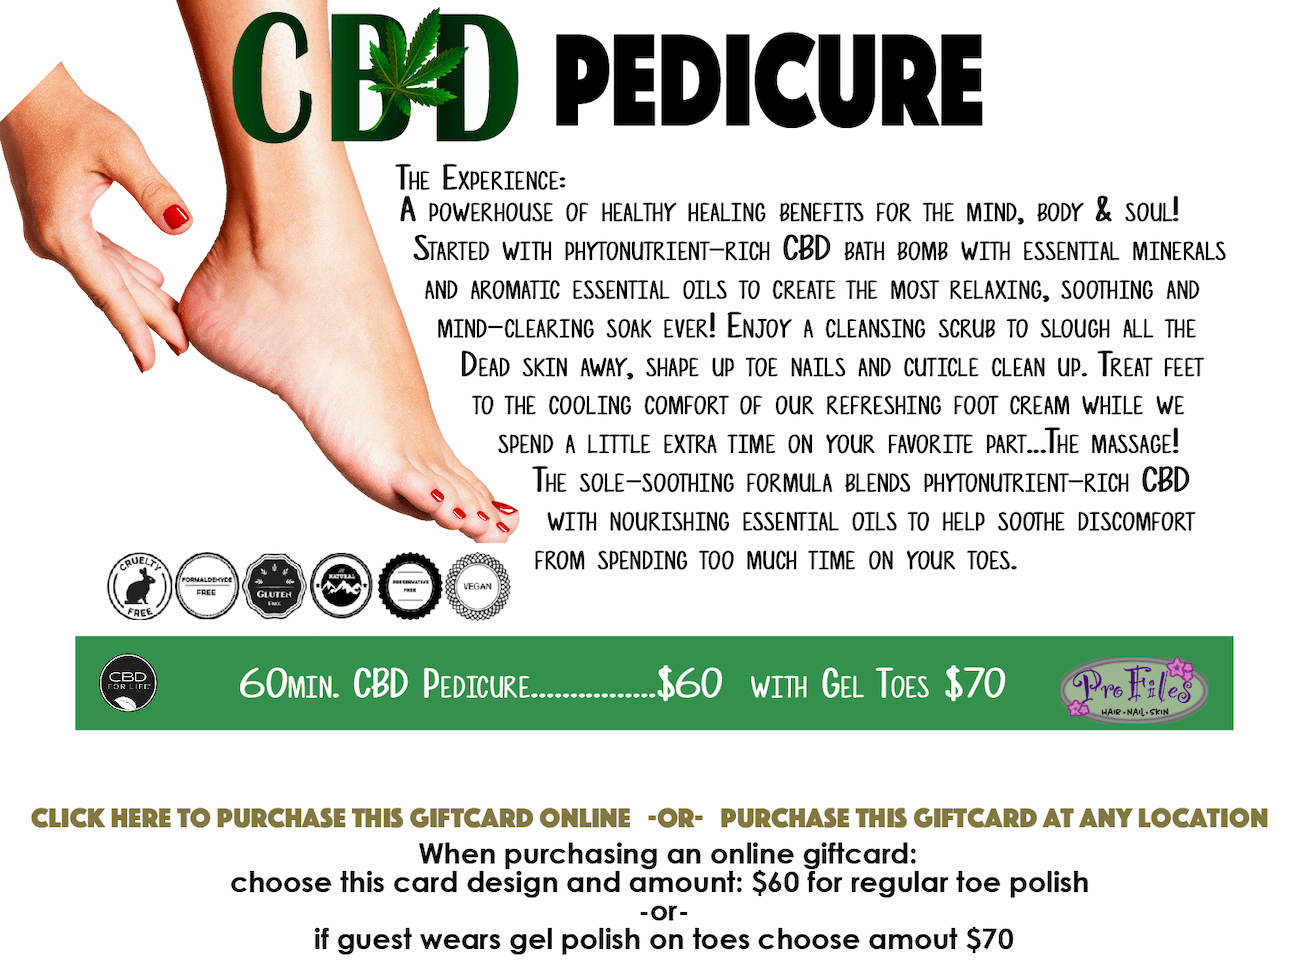 60 min CBD pedicure for $60. Click to purchase gift card.